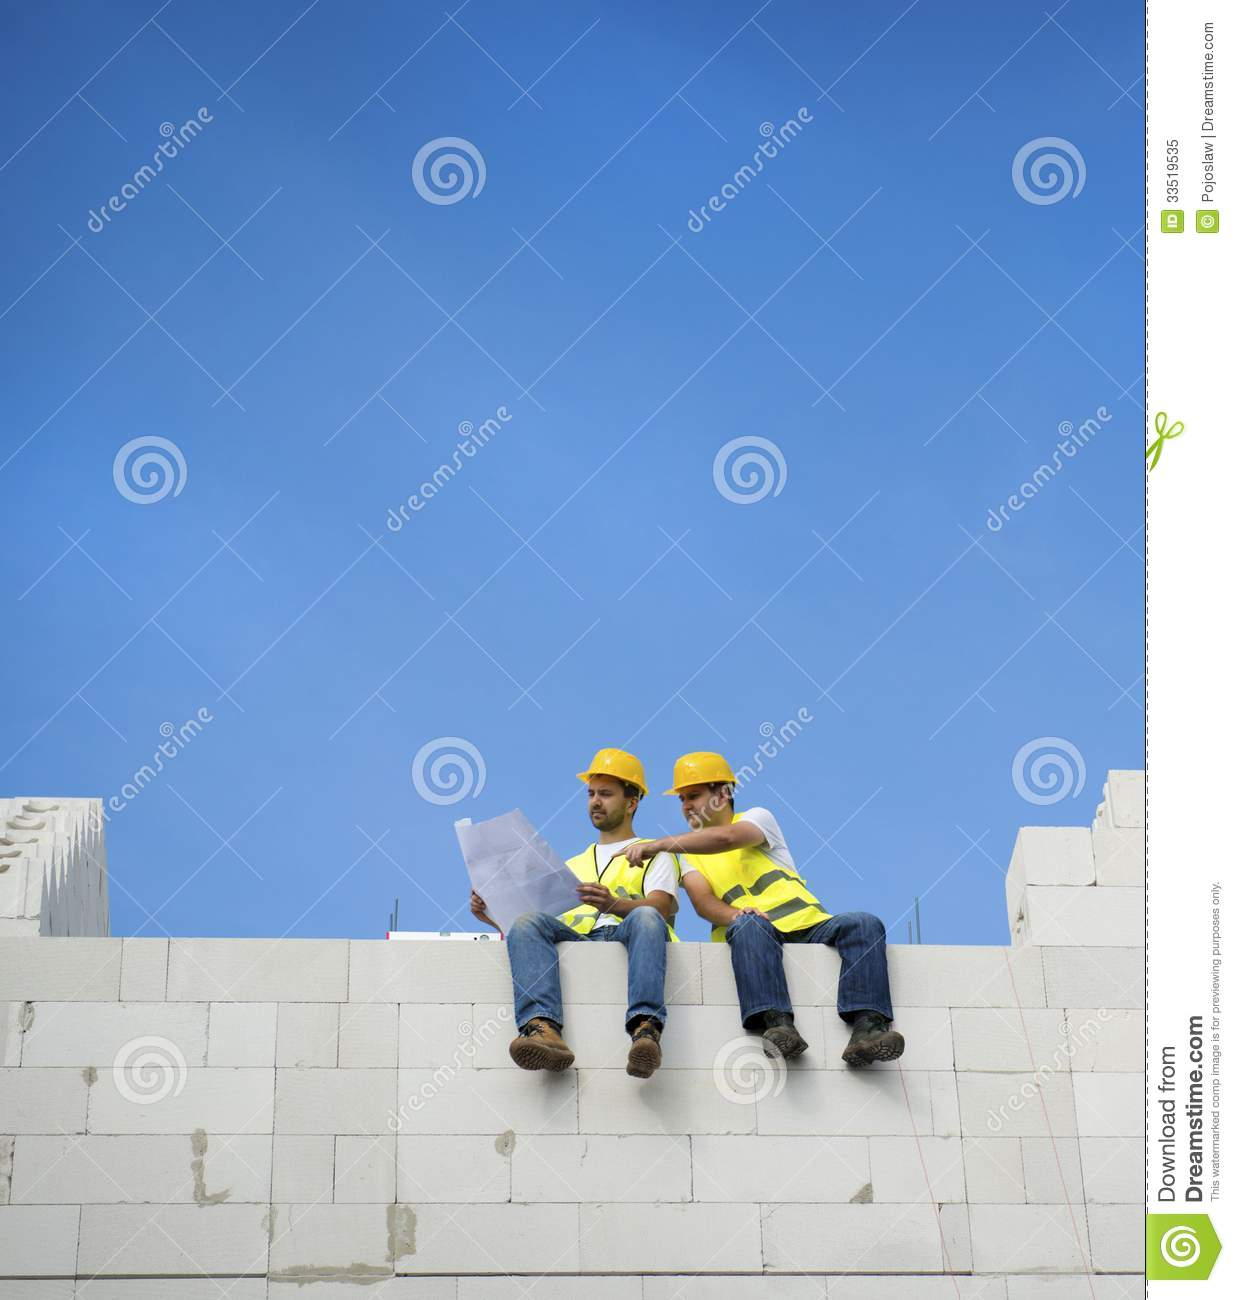 House construction royalty free stock photo image 33519535 for New house construction contract